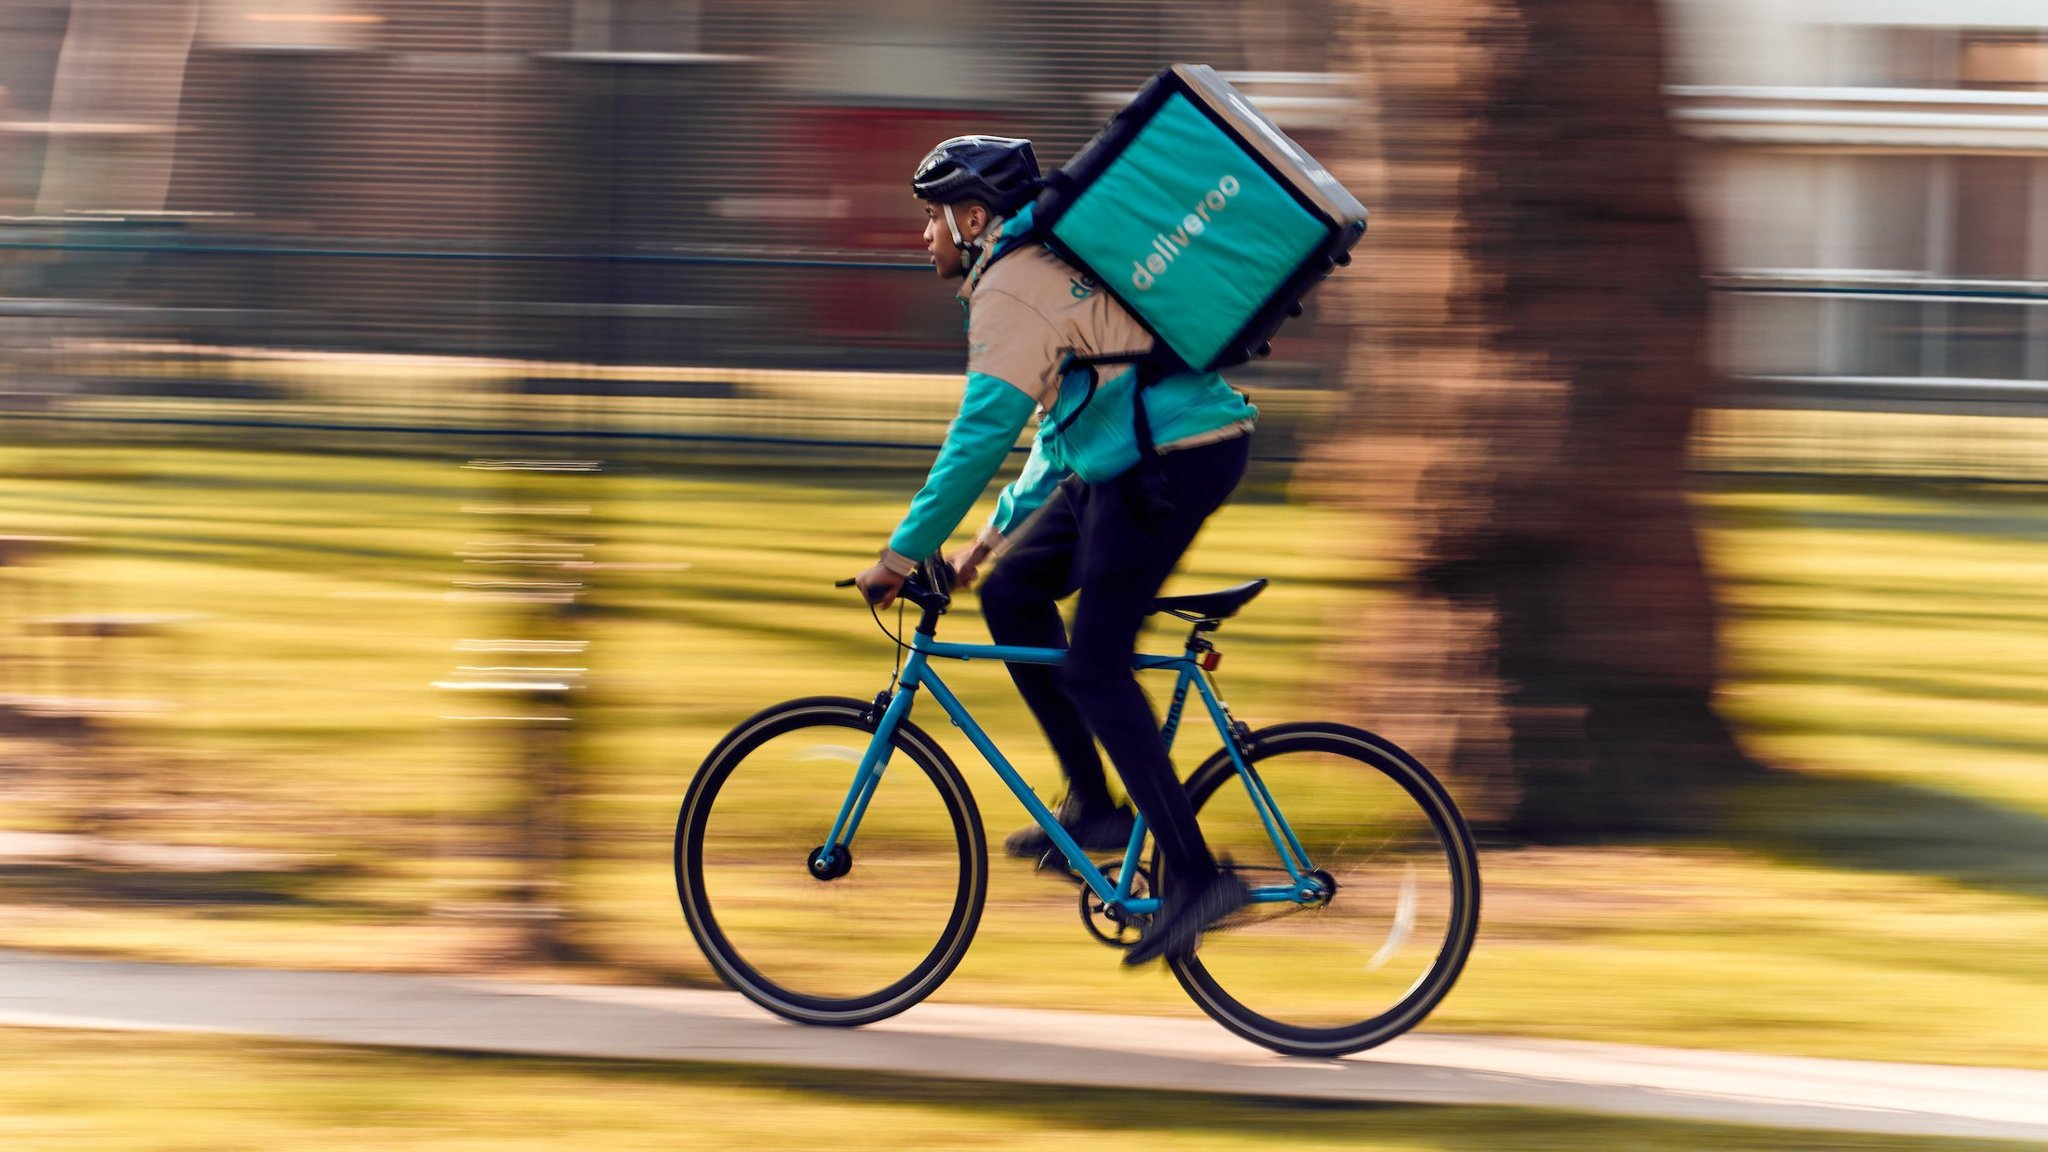 Just Eat skids as Deliveroo rides into its territory  e546747d1